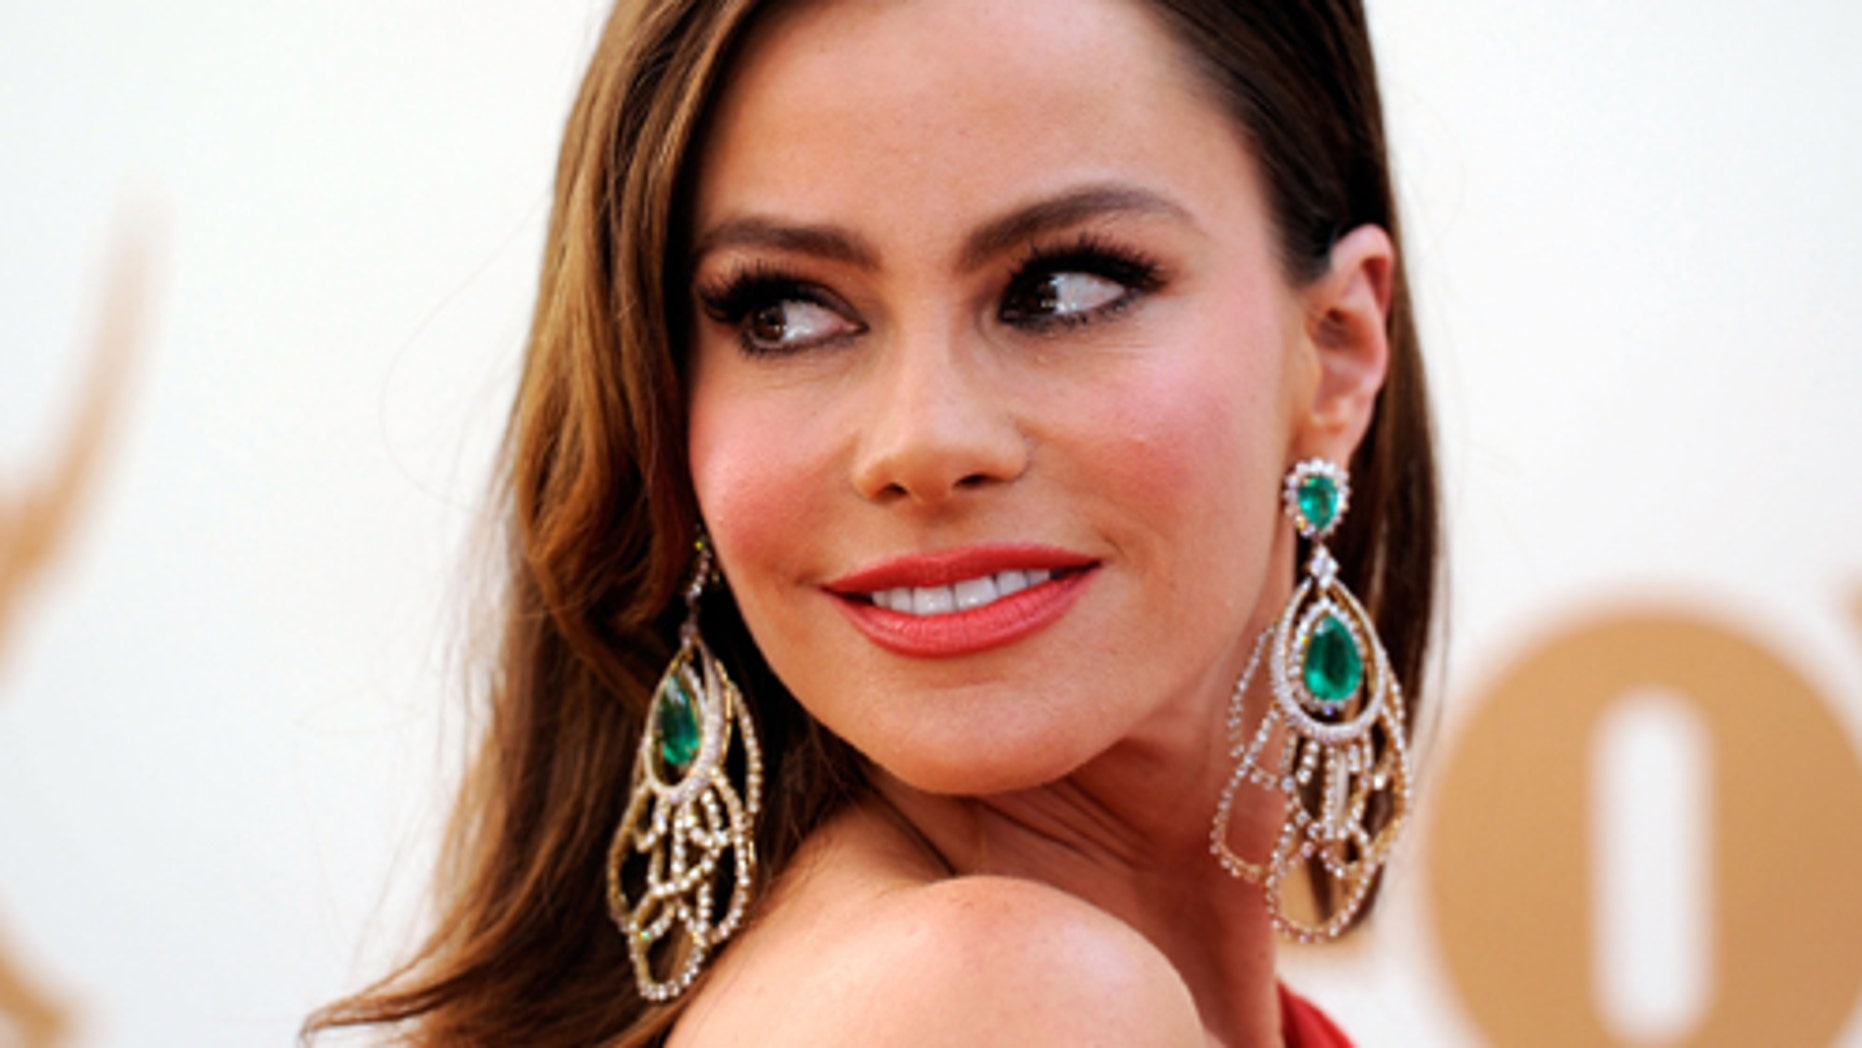 LOS ANGELES, CA - SEPTEMBER 18:  Actress Sofia Vergara arrives at the 63rd Annual Primetime Emmy Awards held at Nokia Theatre L.A. LIVE on September 18, 2011 in Los Angeles, California.  (Photo by Frazer Harrison/Getty Images)